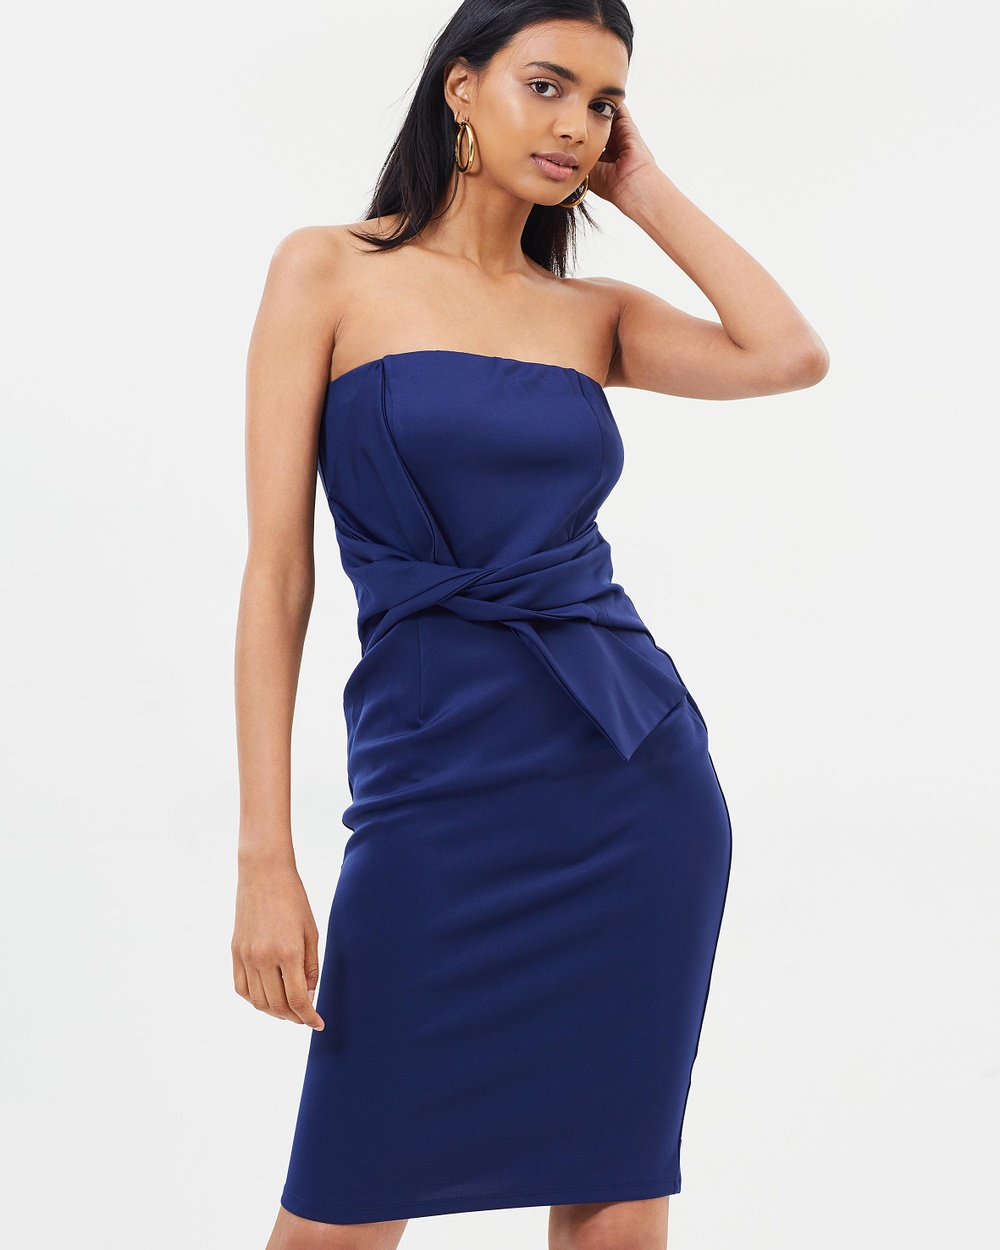 Dorothy Perkins Bandeau Tie Front Body Con Dress Bodycon Dresses Navy Blue Bandeau Tie Front Body-Con Dress